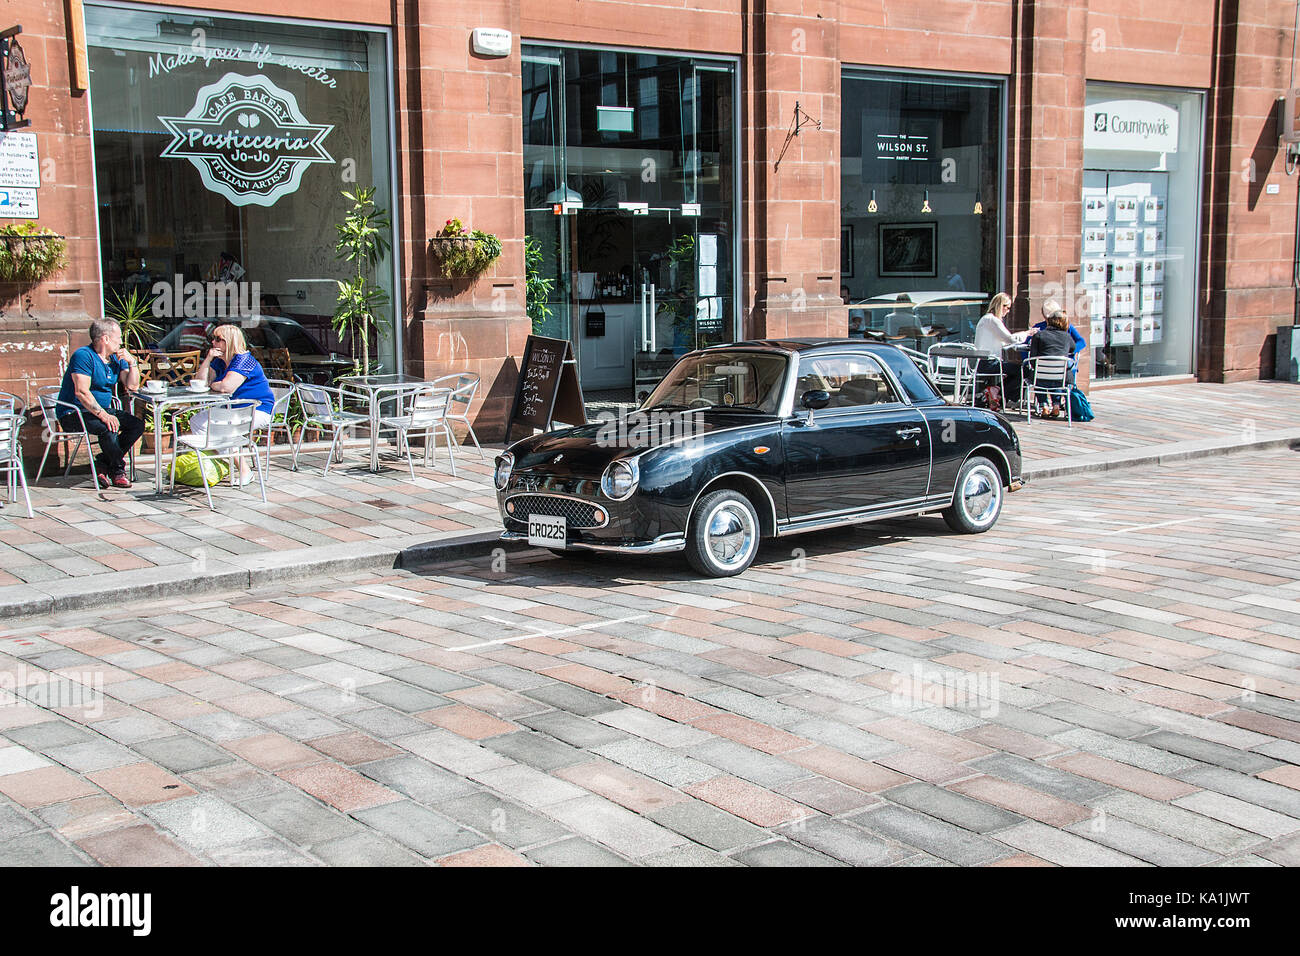 Quiet drinks outside a cafe bar on a summers day in the Merchant city area of Glasgow Scotland 25Aug2014 - Stock Image